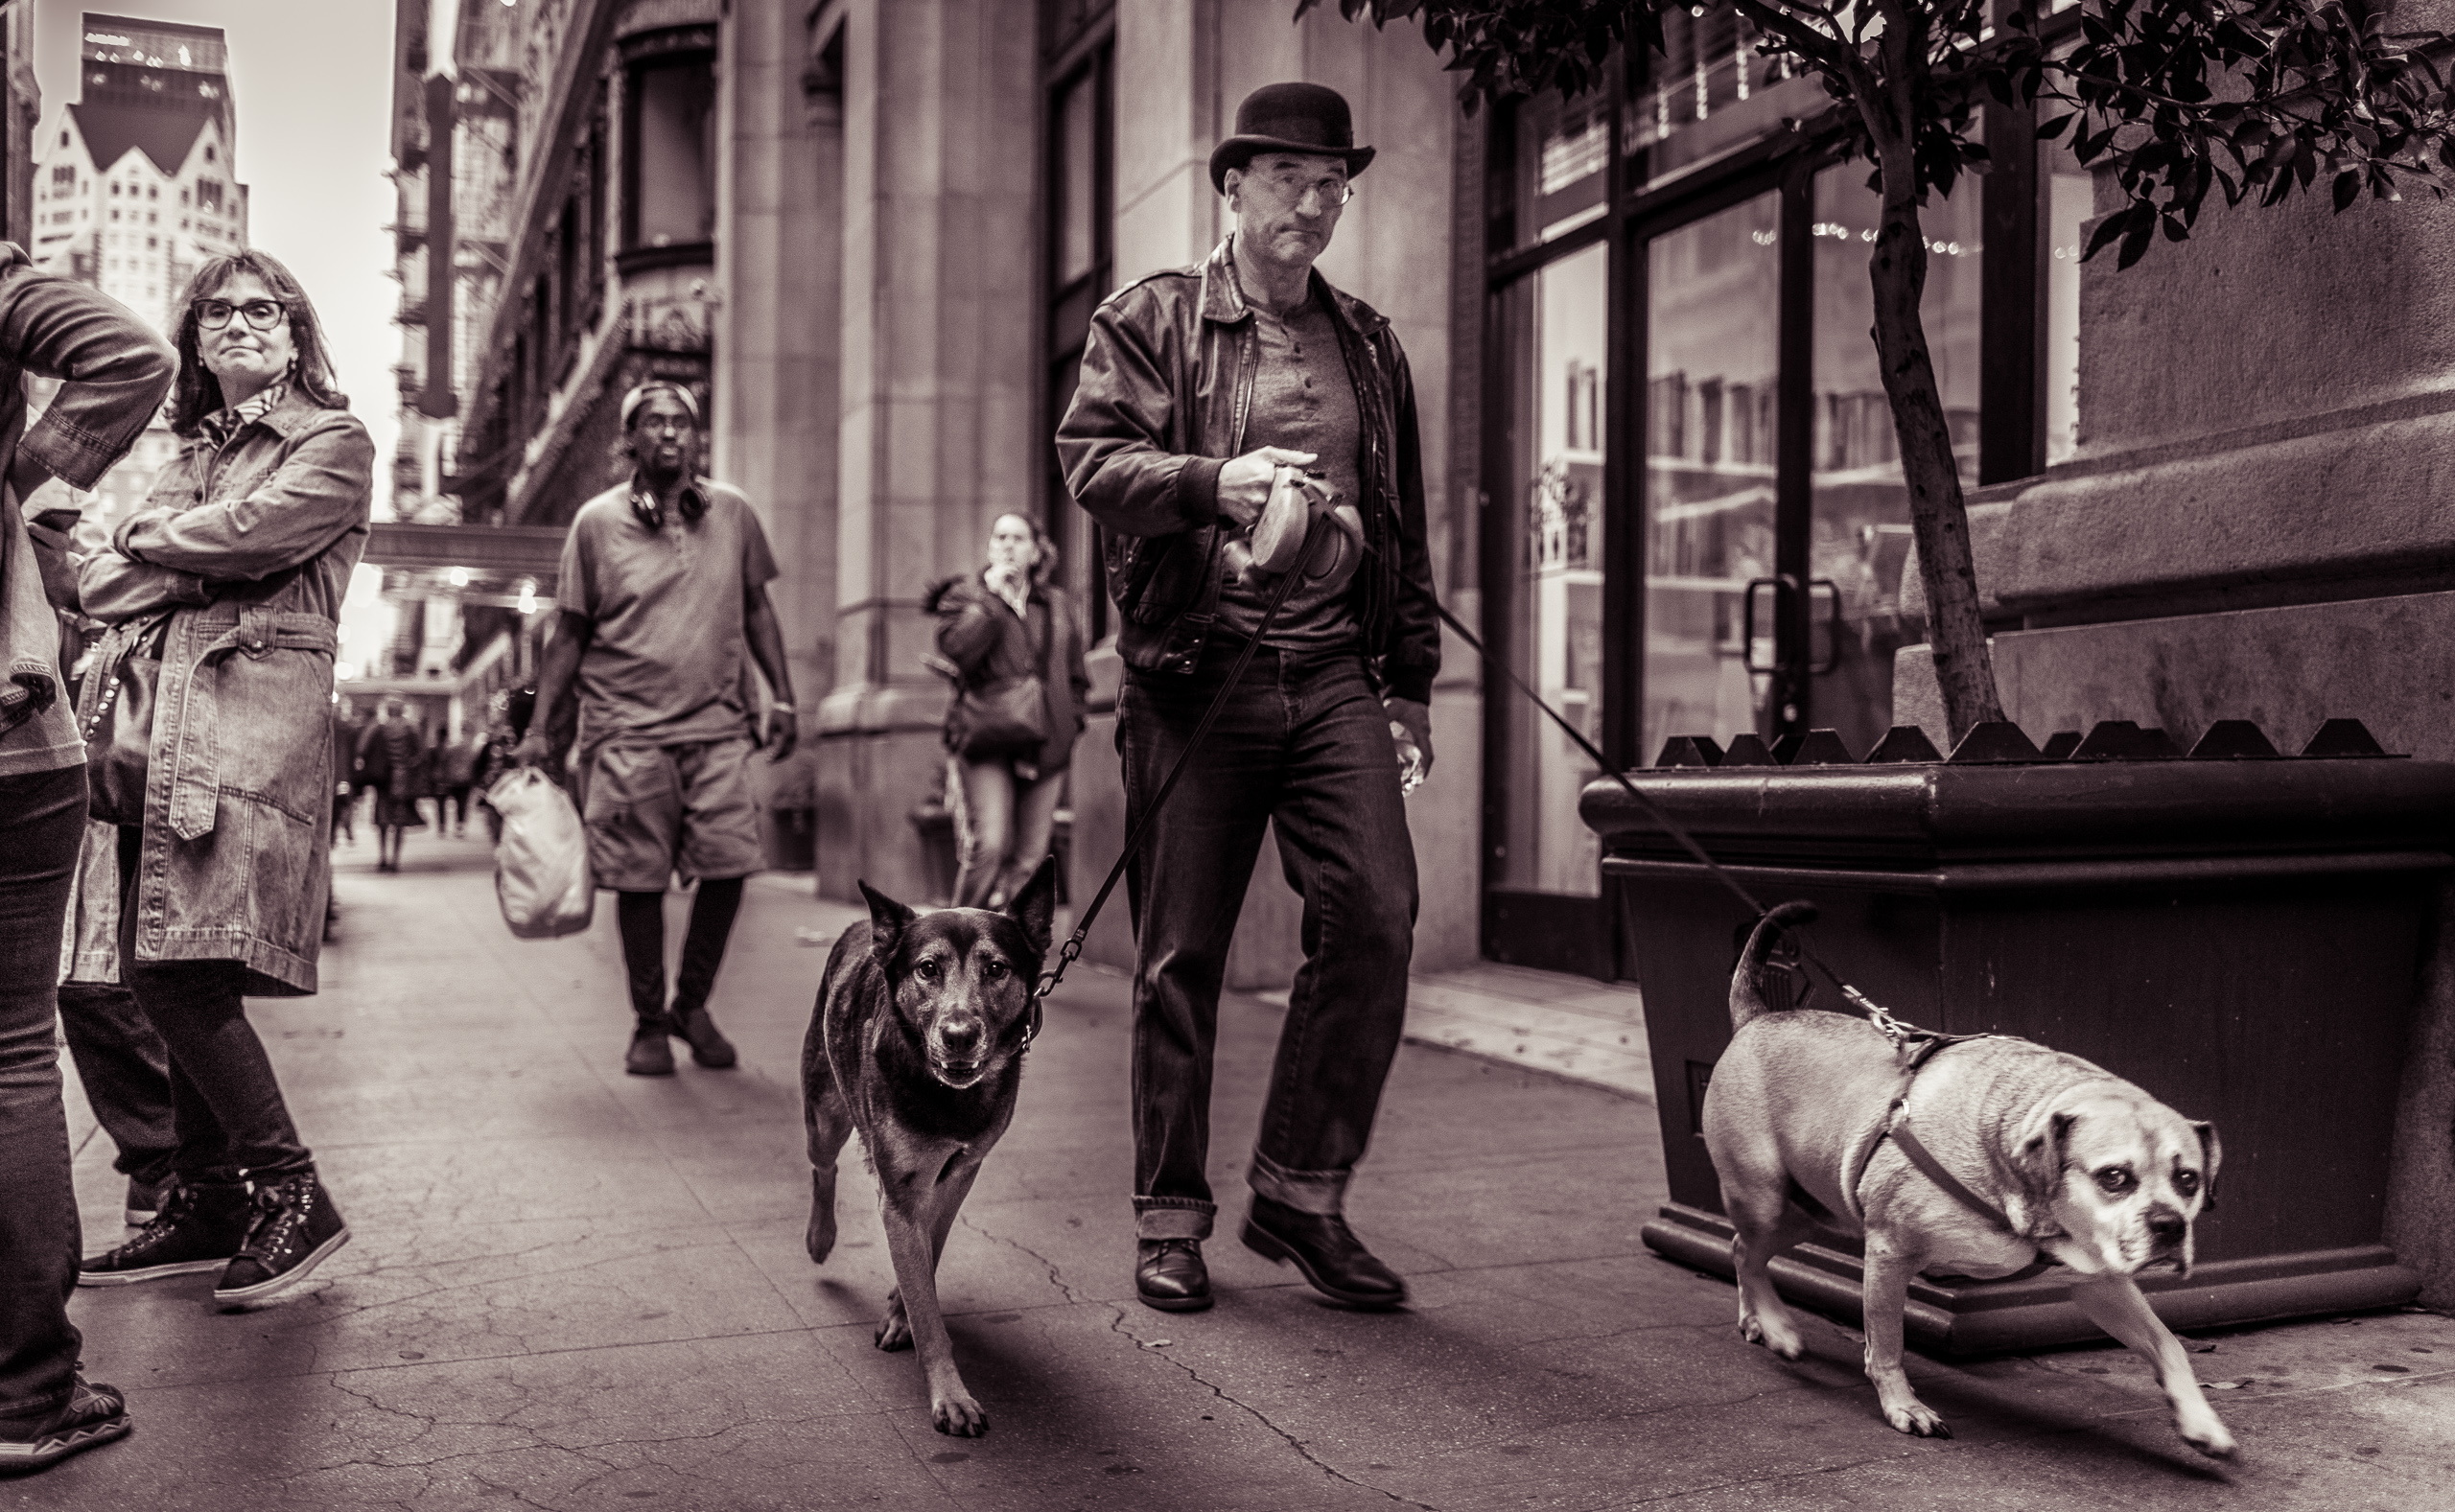 a man walks 2 dogs southeast on 5th Street in front of The Last Bookstore in DTLA